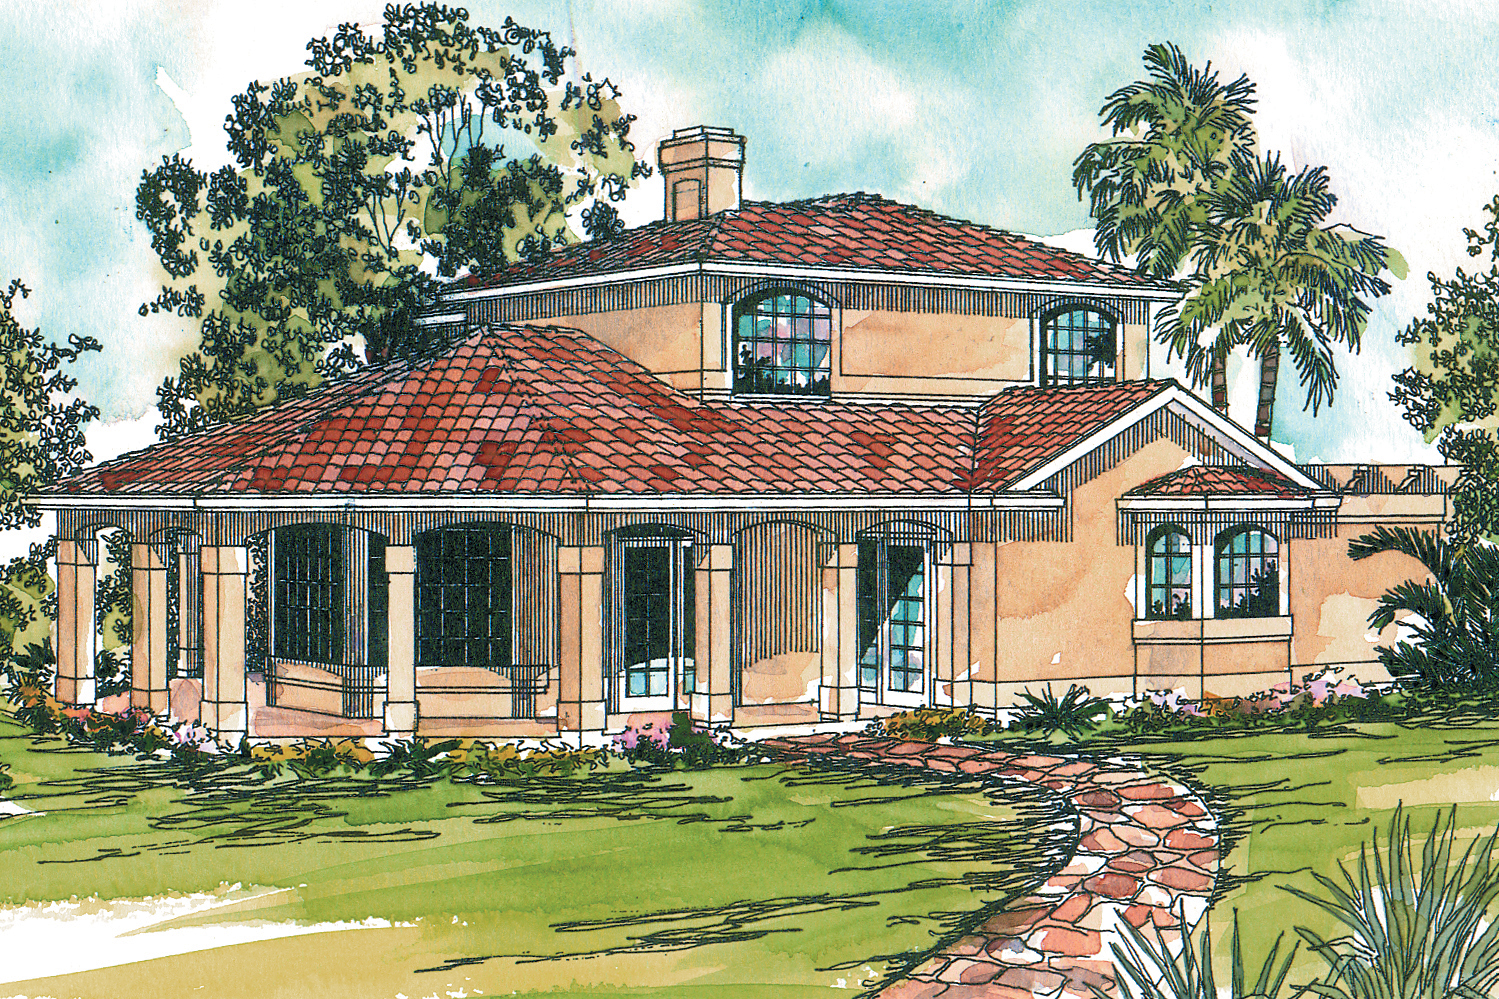 Mediterranean house plans lauderdale 11 037 associated for Mediterranean house designs and floor plans